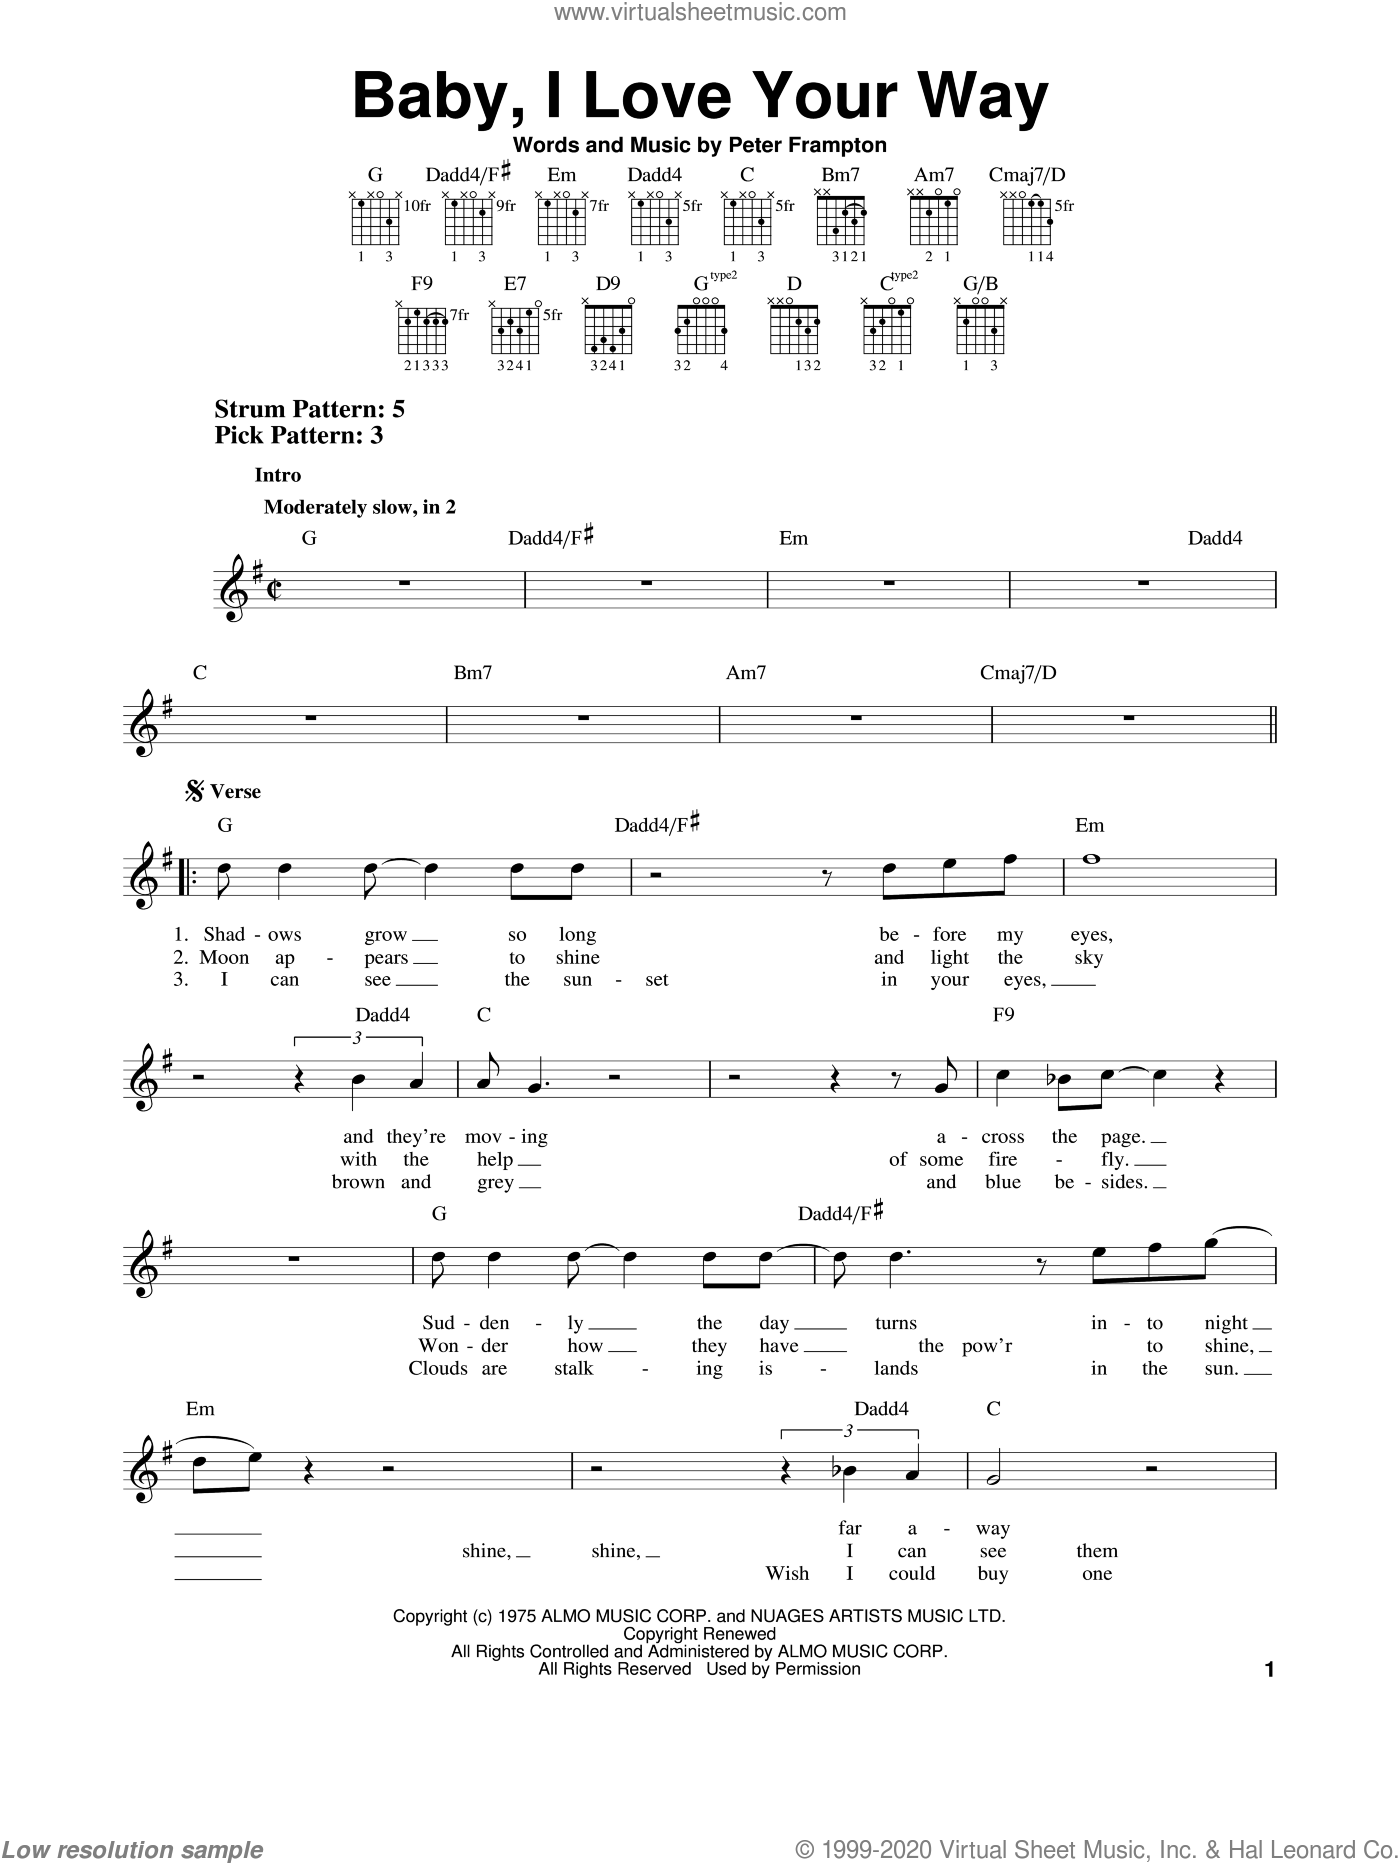 Baby, I Love Your Way sheet music for guitar solo (chords) by Peter Frampton. Score Image Preview.